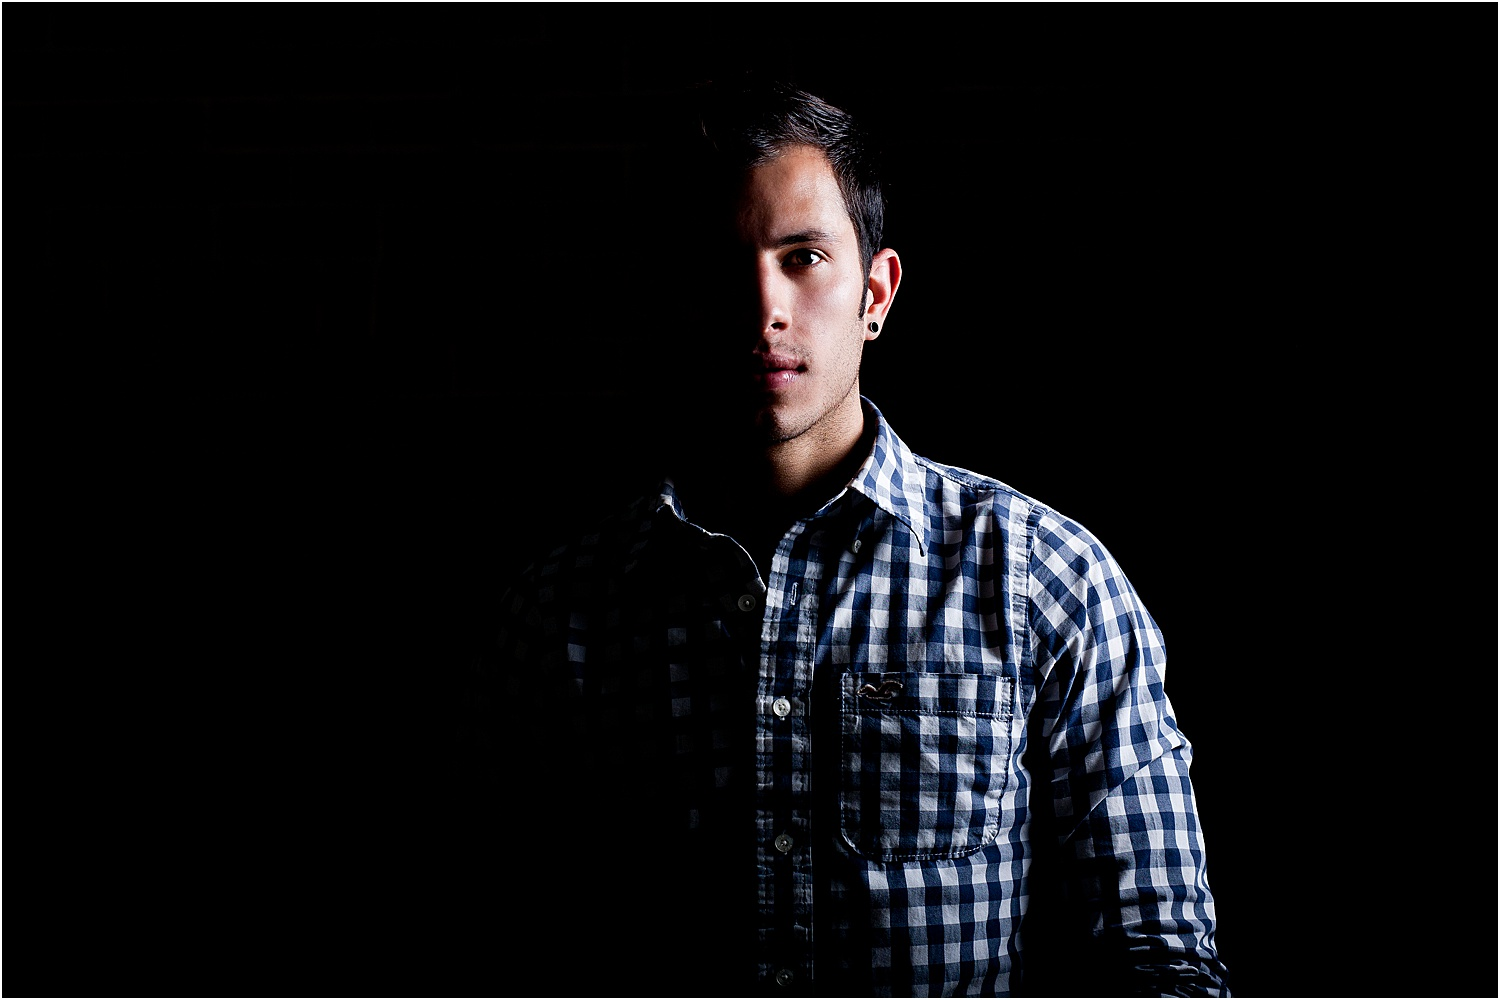 Image: You can light portraits creatively when you have control of the space and lighting.